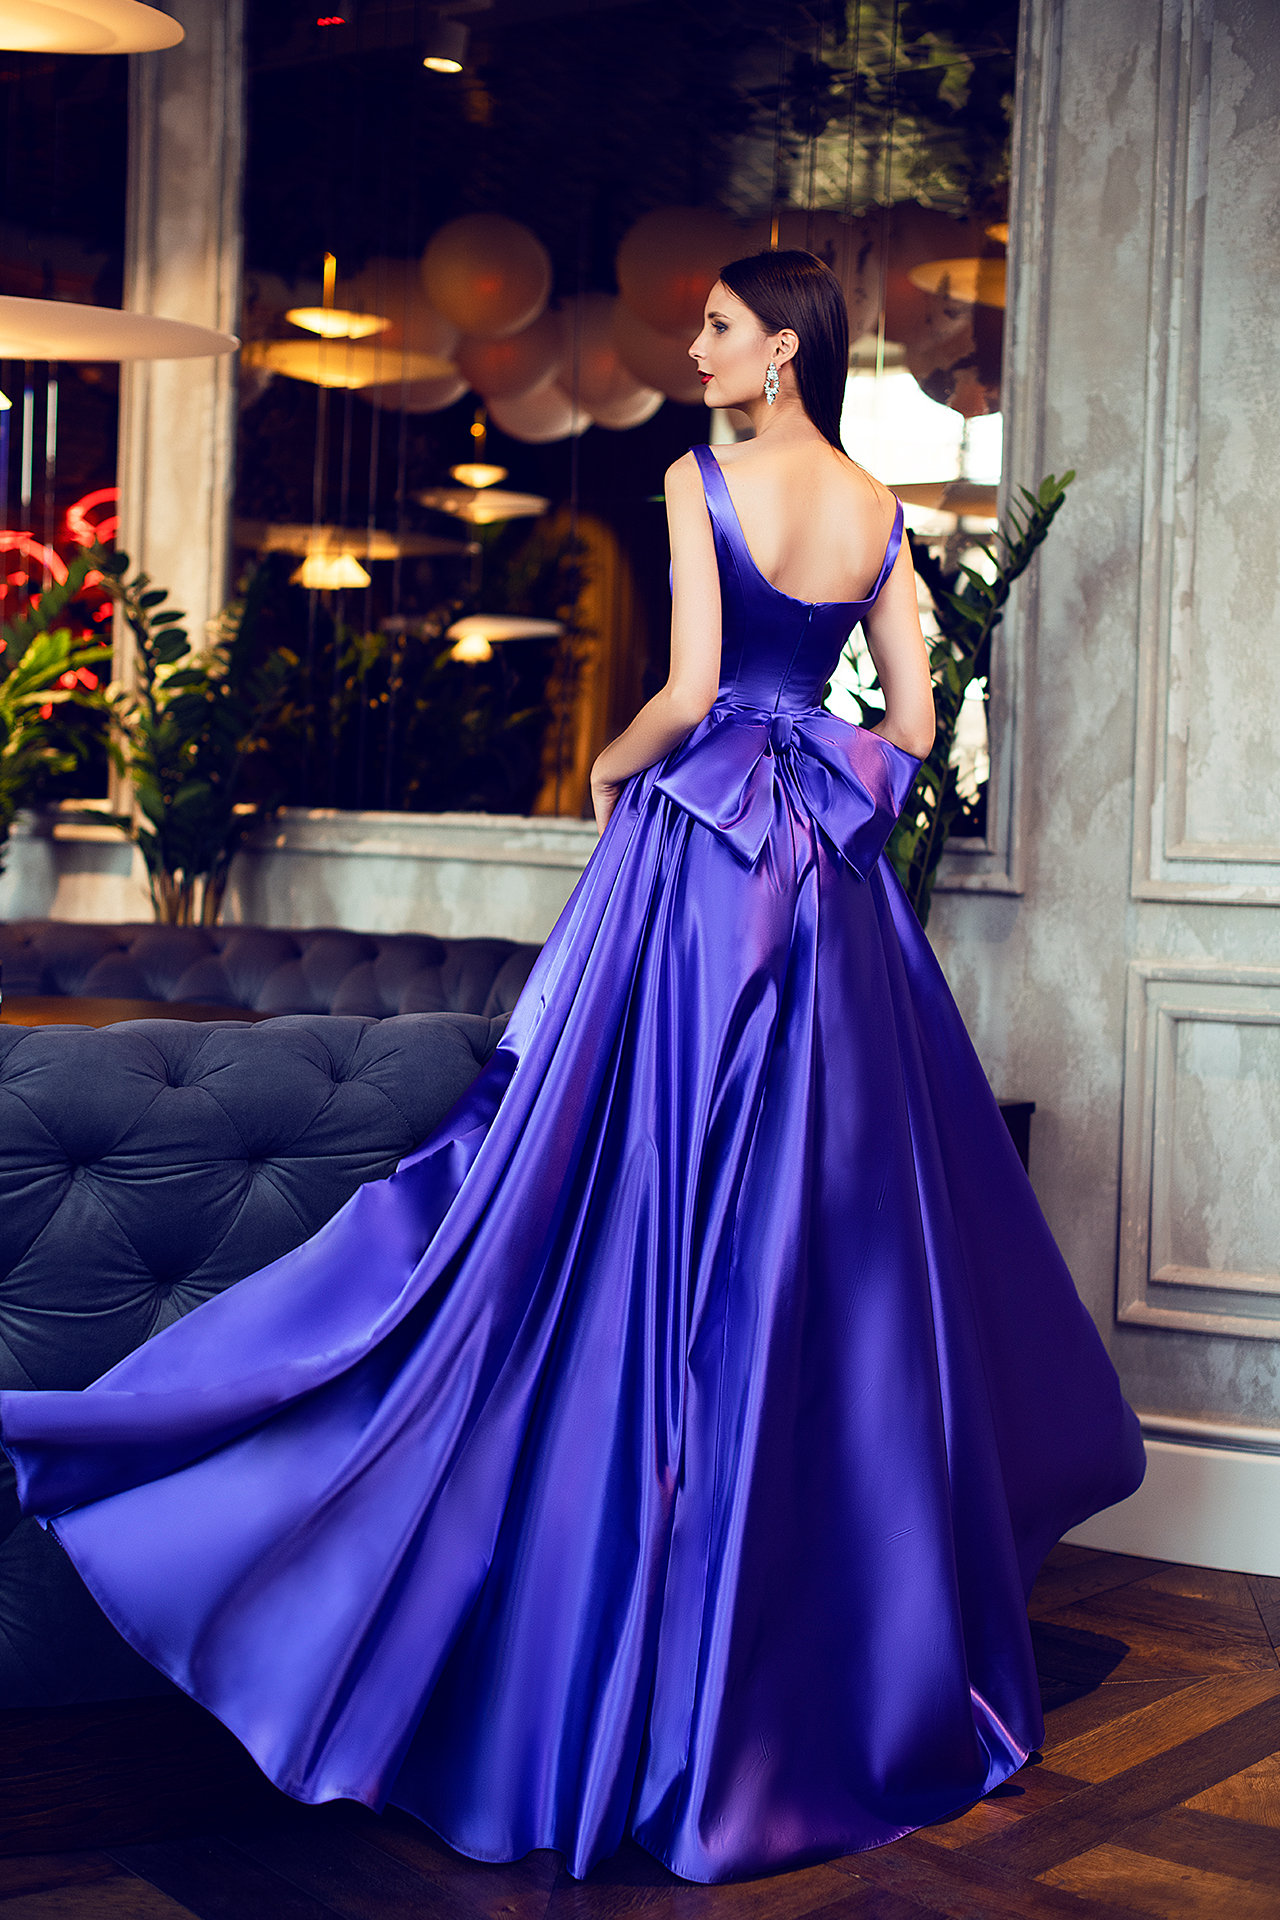 Evening gowns S-1421 Silhouette  A Line  Color  Violet  Neckline  Straight  Sleeves  Wide straps  Train  No train